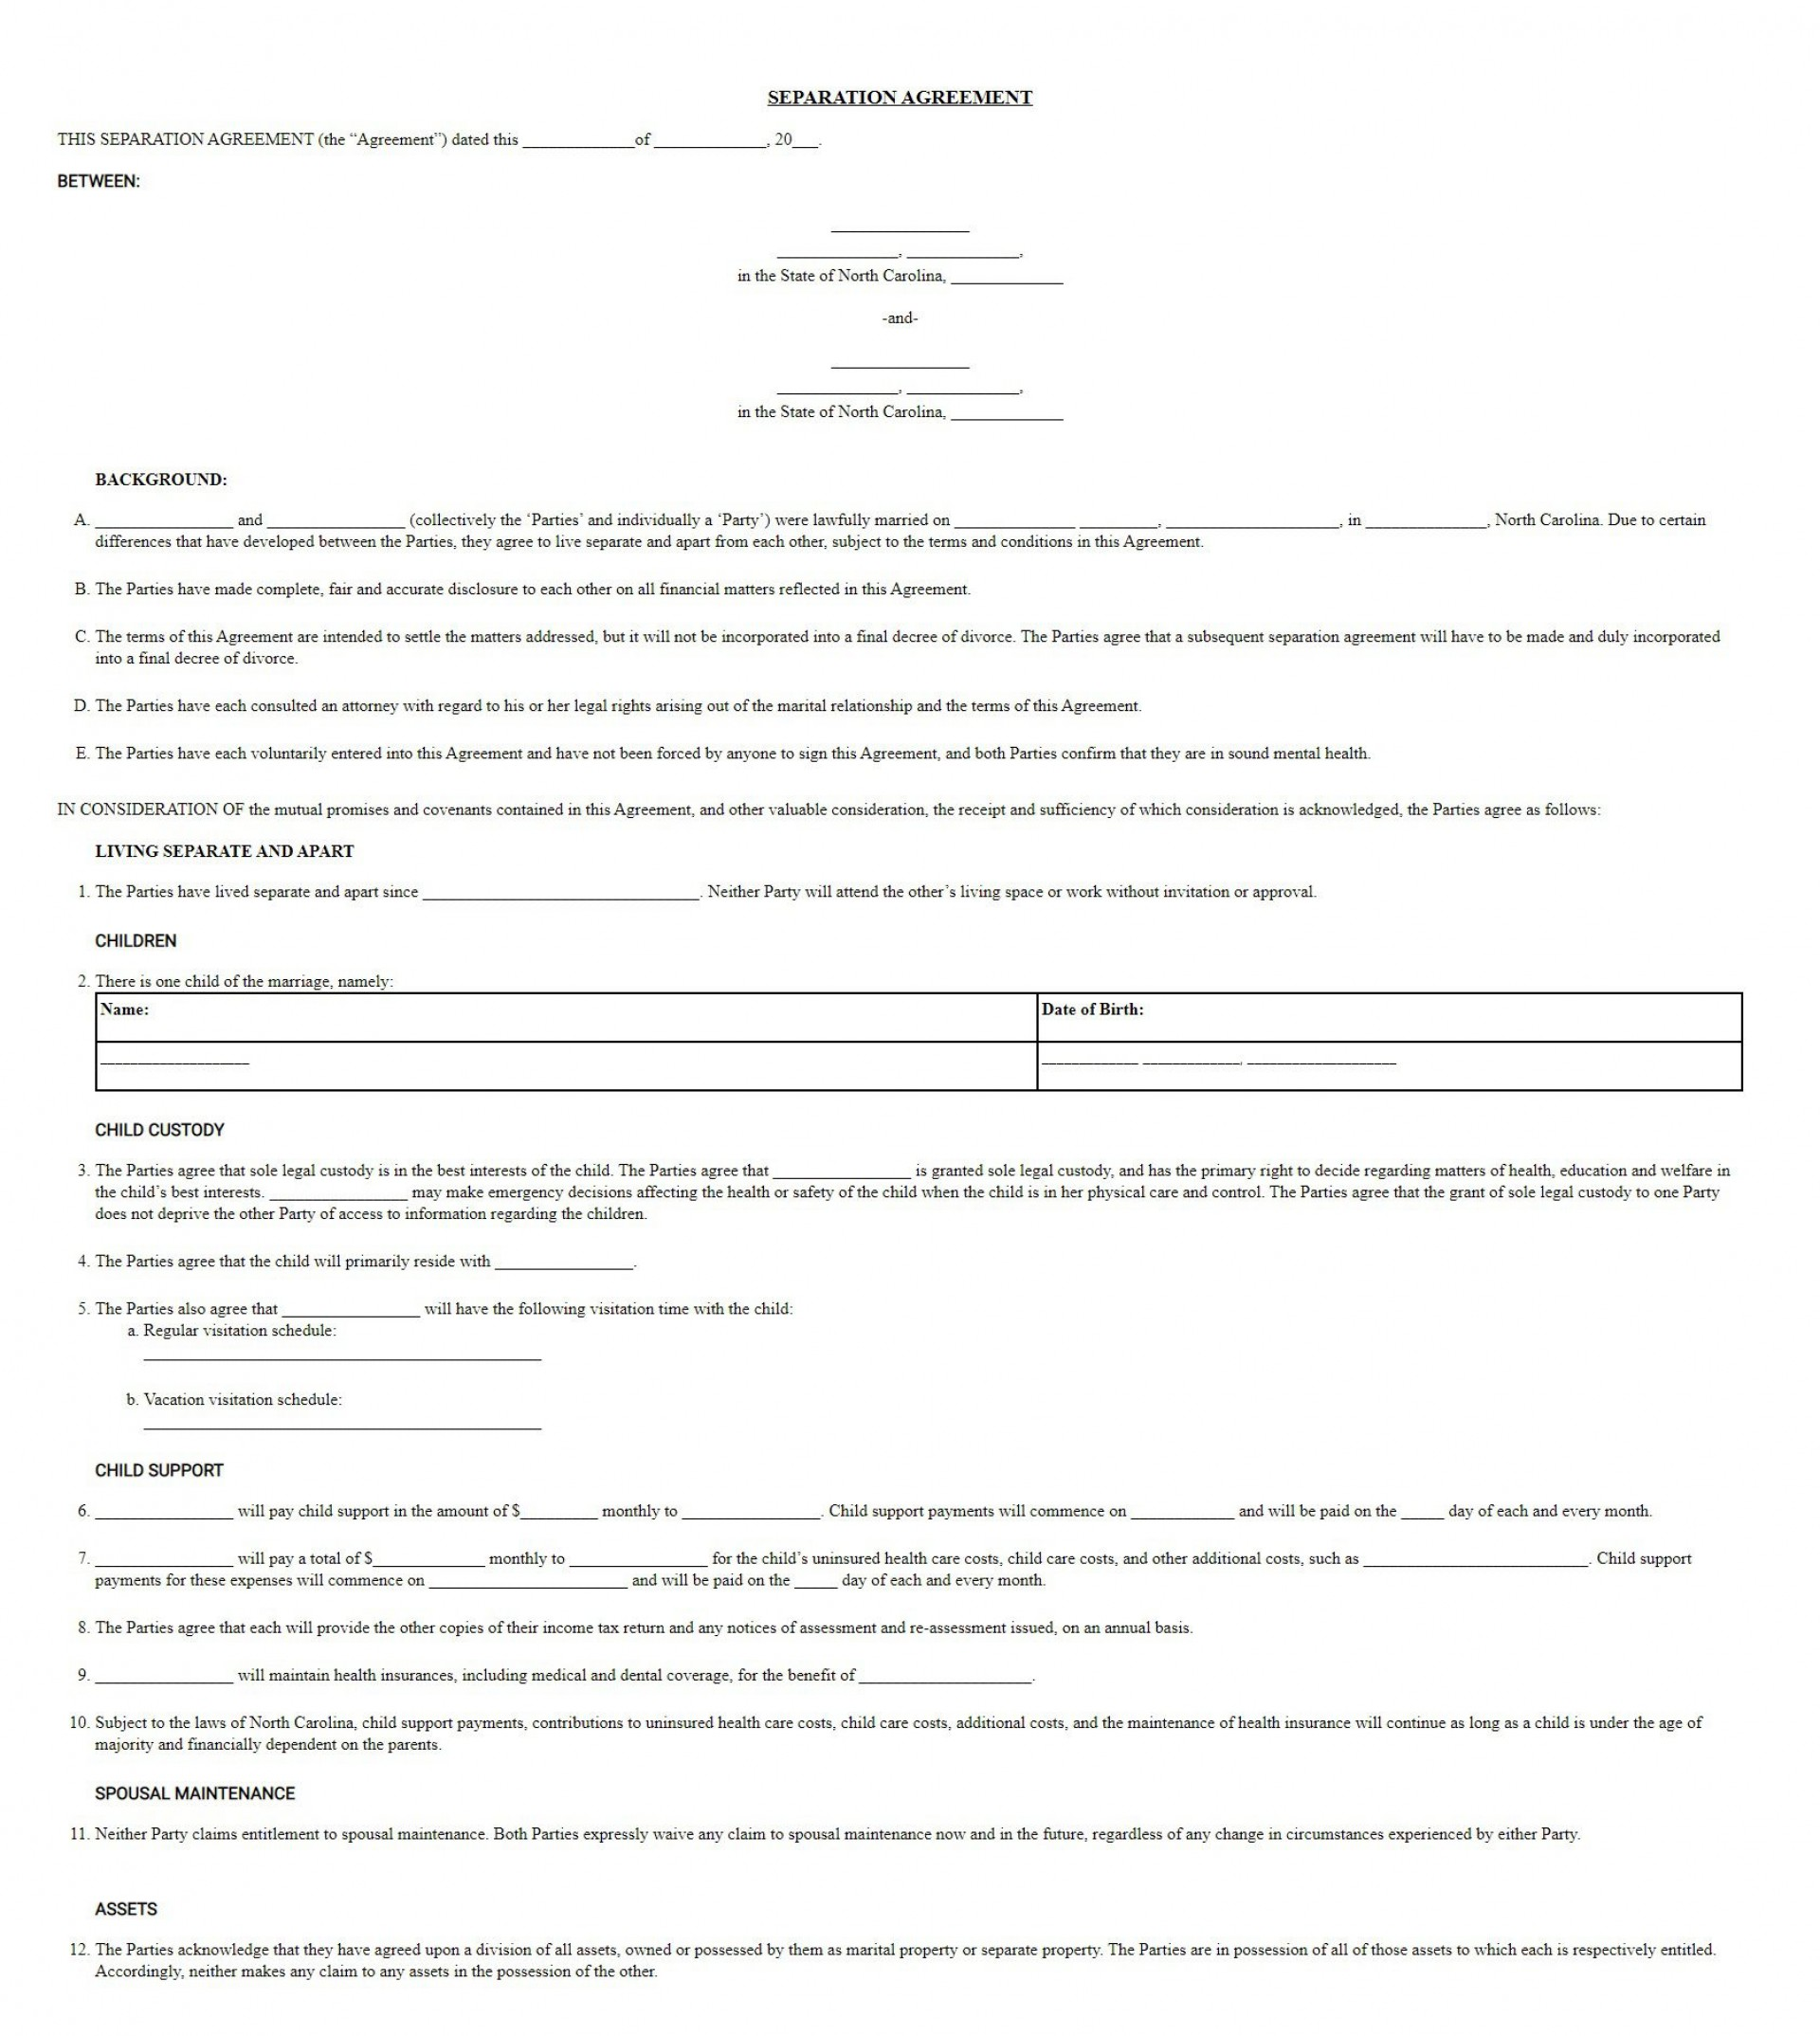 005 Awesome Virginia Separation Agreement Template Image  Marital Marriage1920